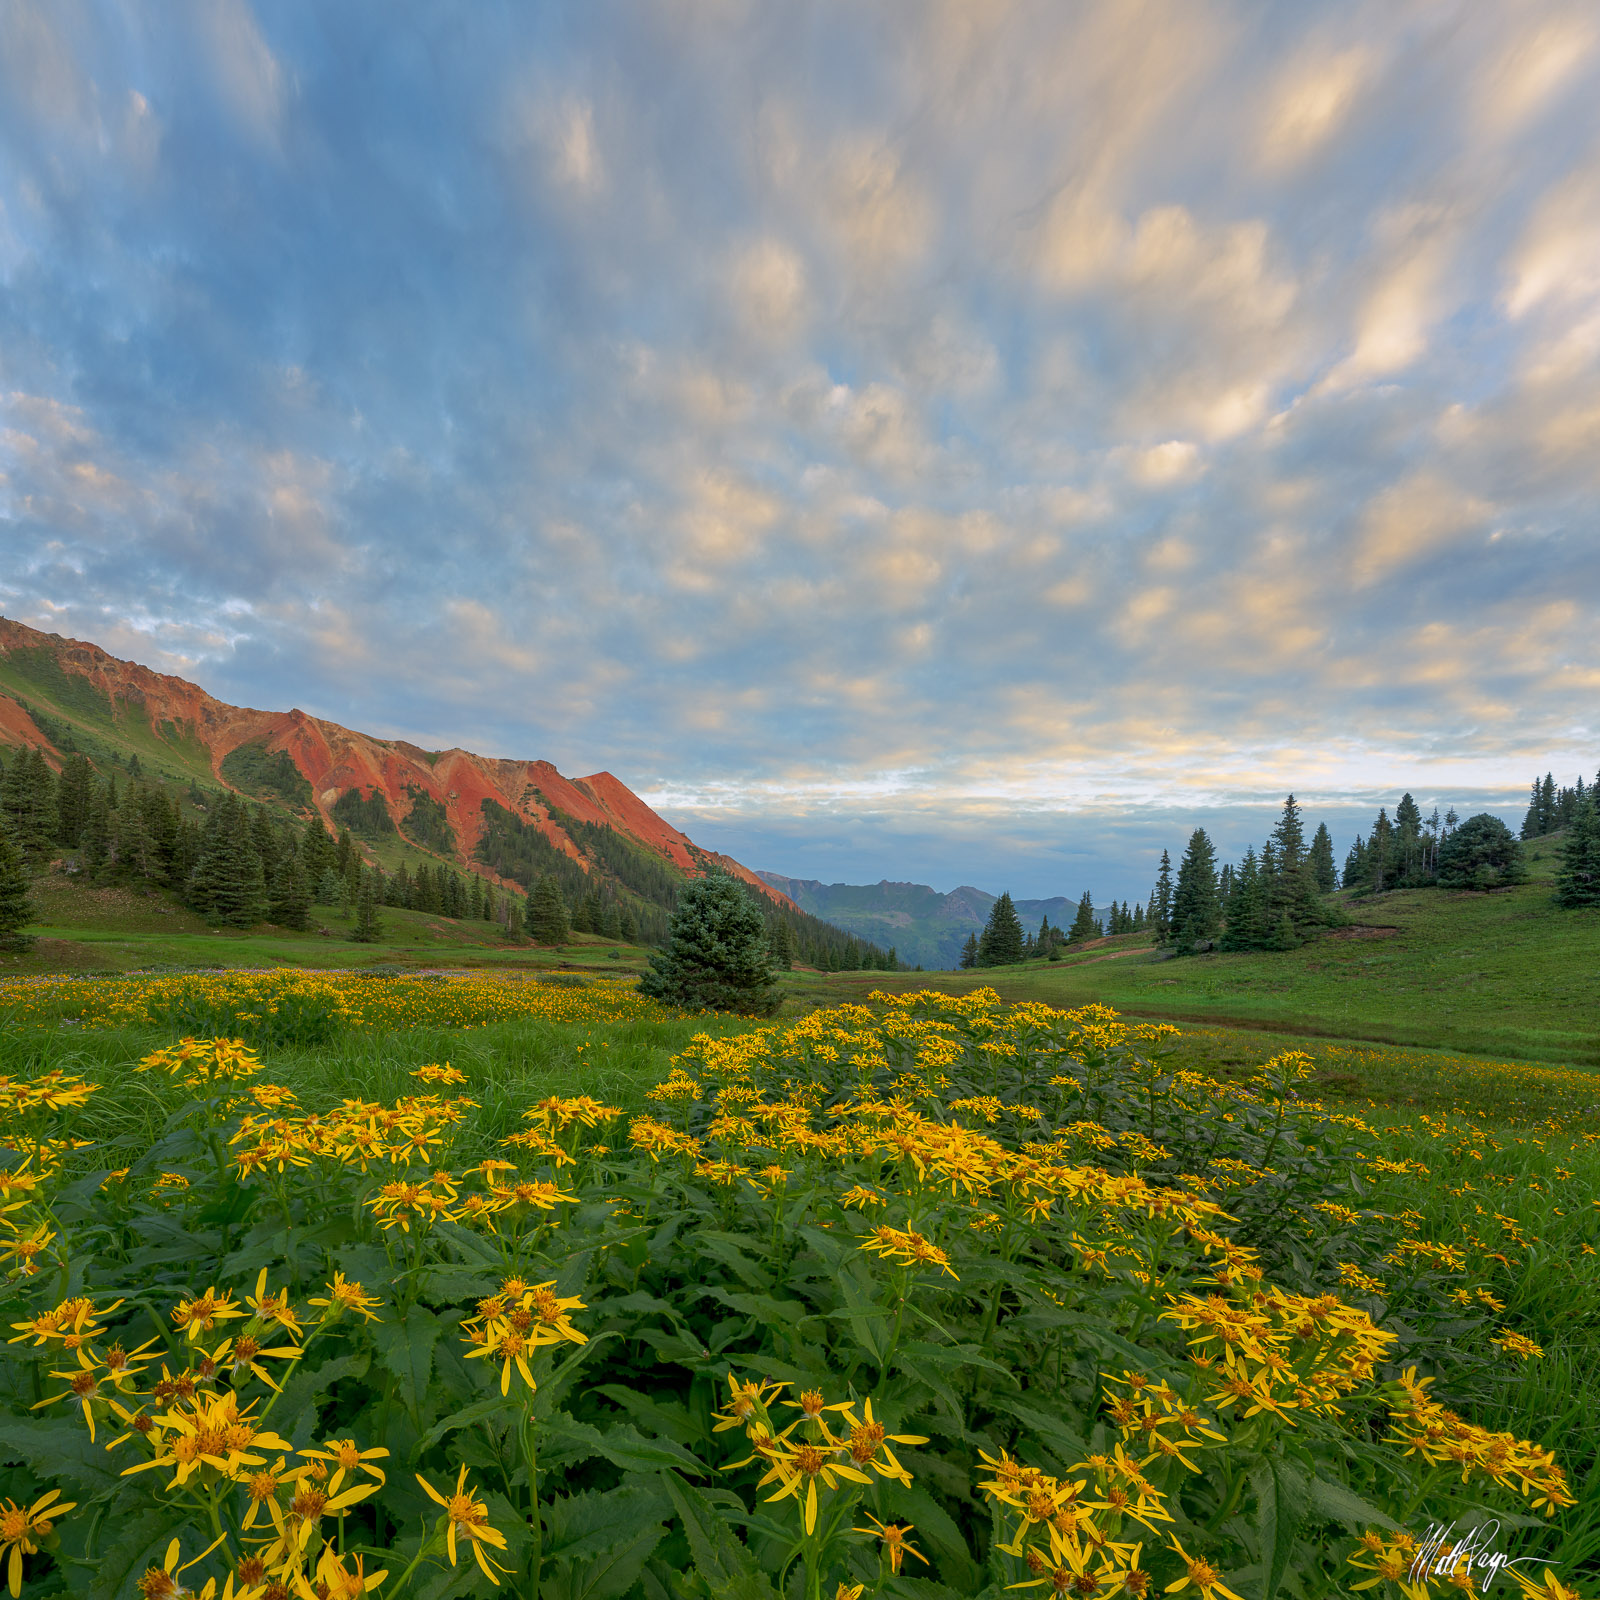 What I liked about this particular composition was how the yellow wildflowers in the foreground mirrored the clouds in the sky...